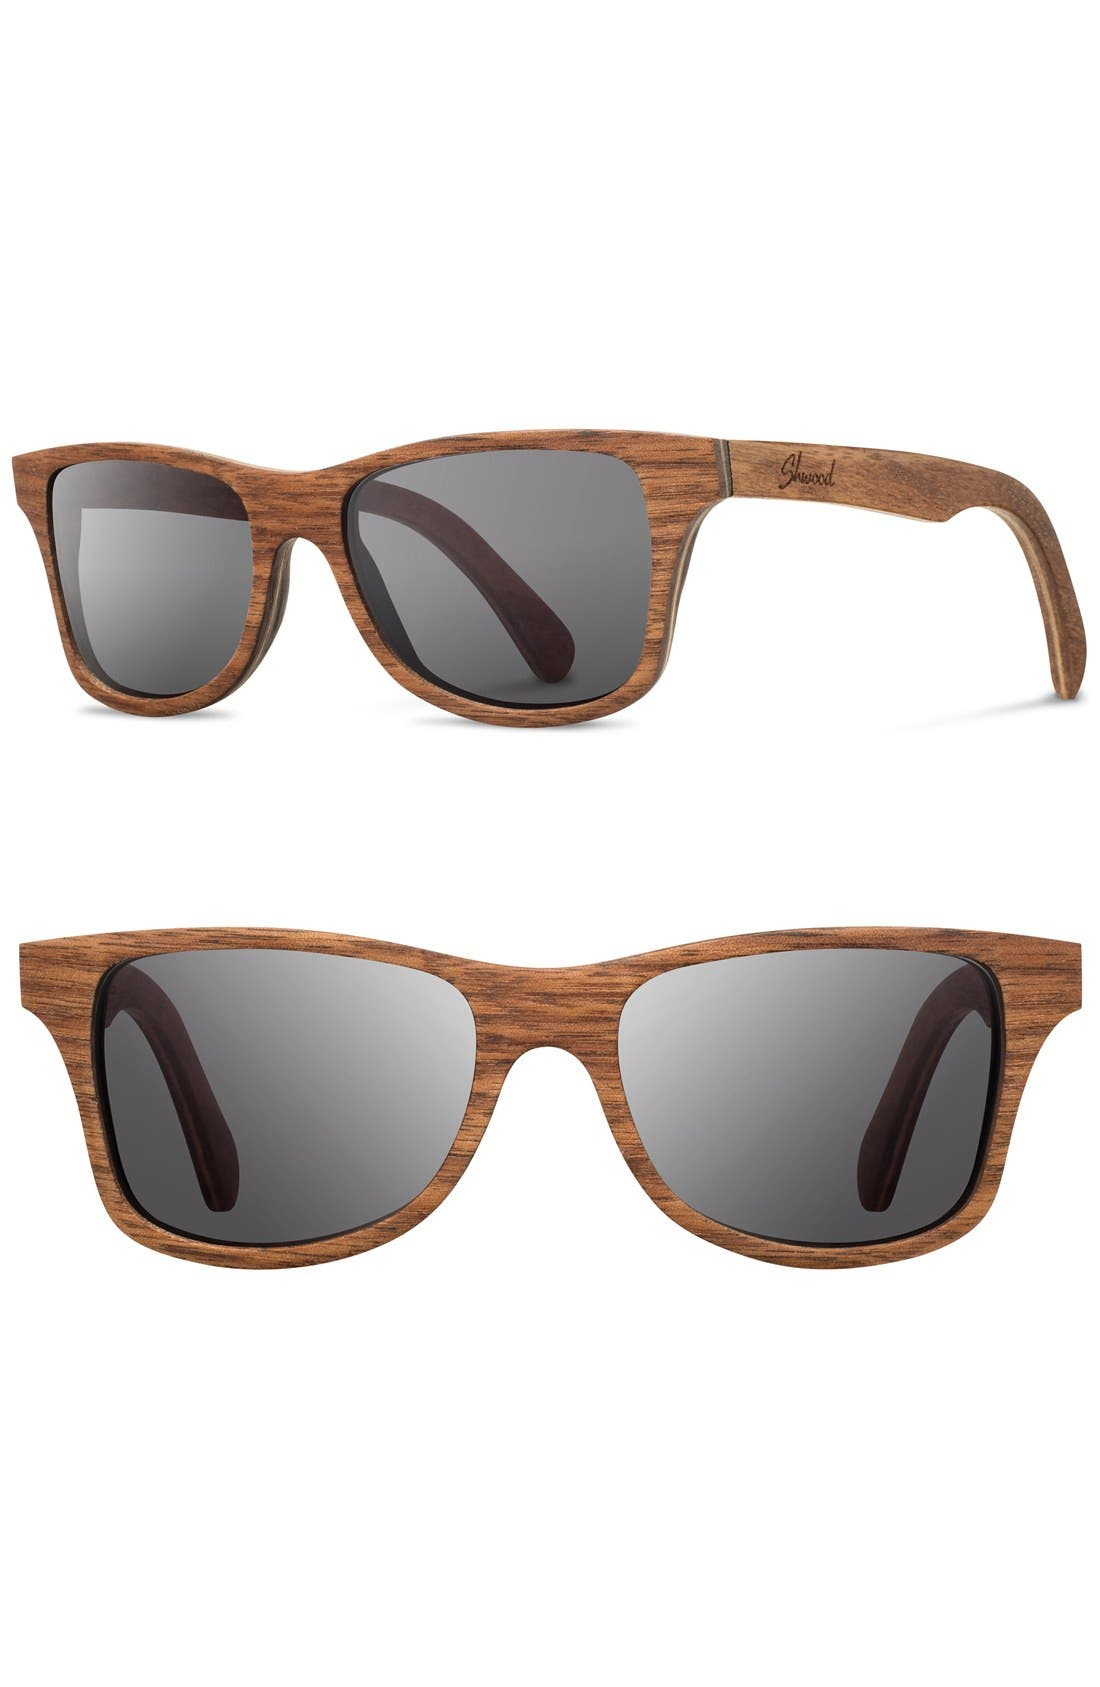 'Canby' 54mm Wood Sunglasses,                         Main,                         color, 210